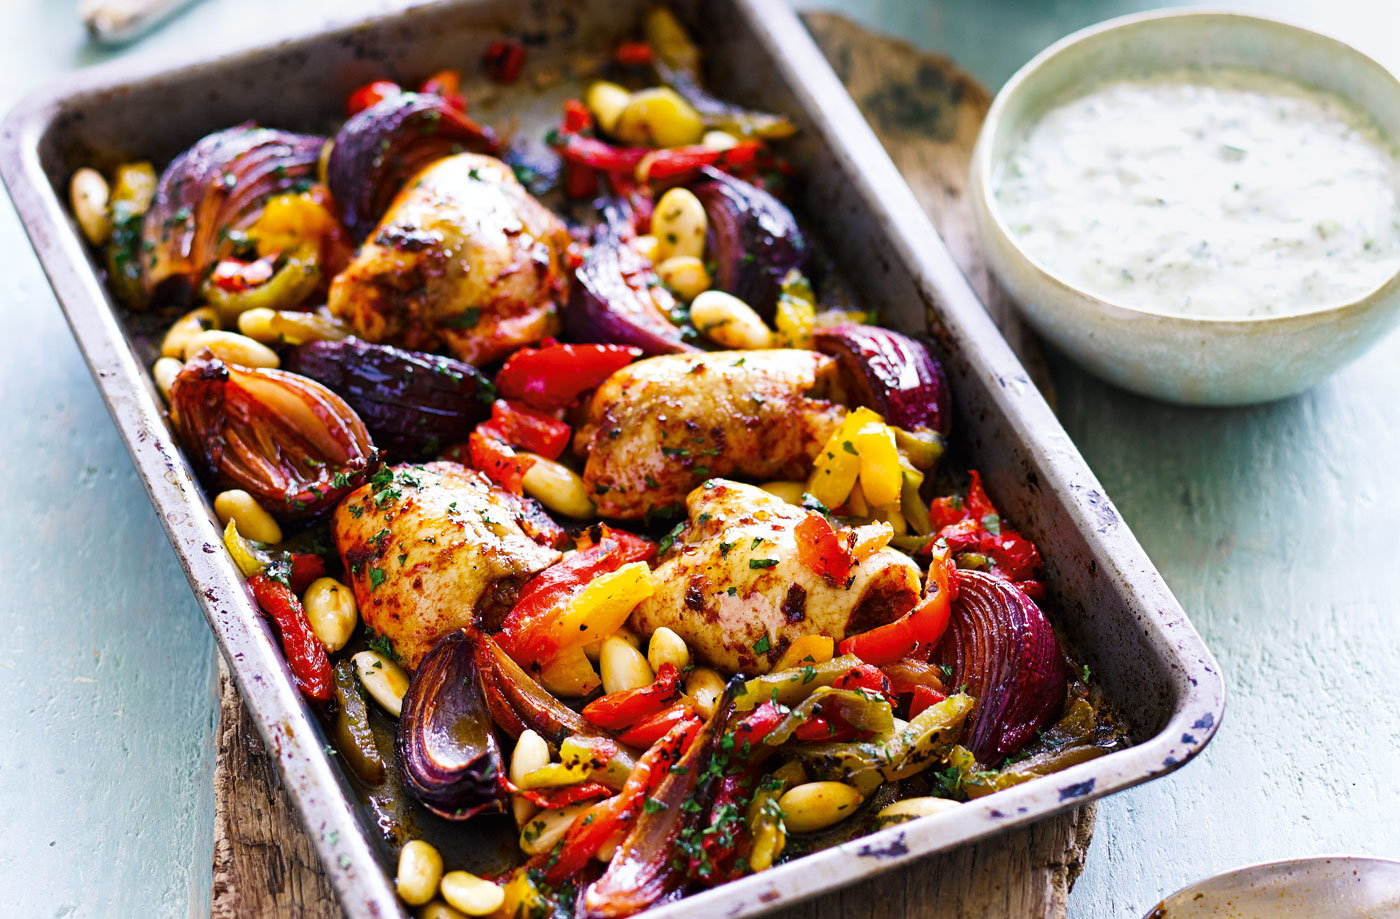 Harissa chicken bake with tzatziki recipe